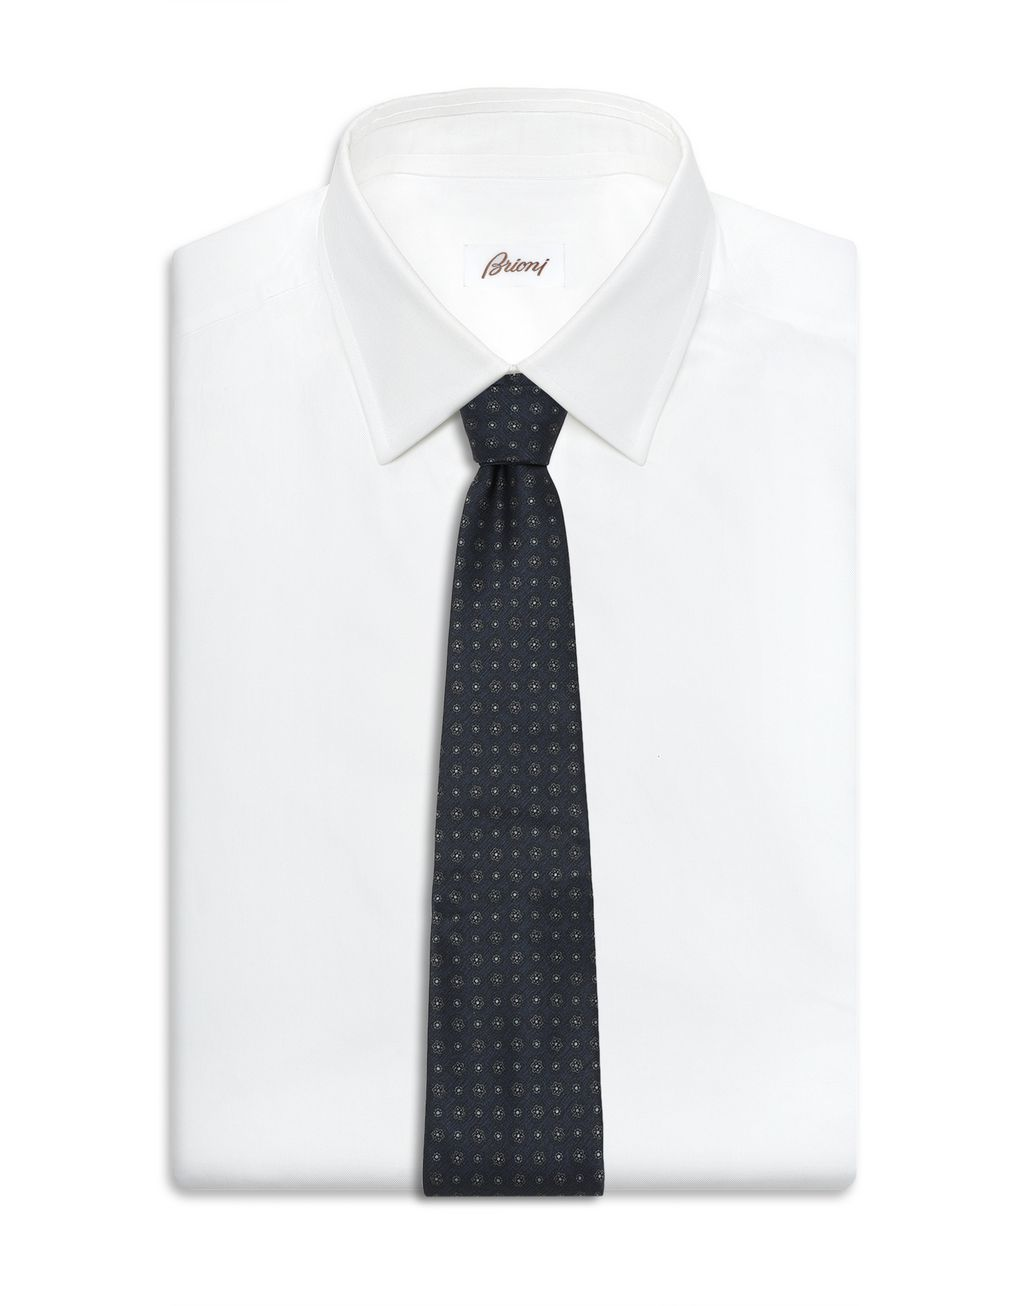 BRIONI Cravate bleu marine à large motif Cravate [*** pickupInStoreShippingNotGuaranteed_info ***] d